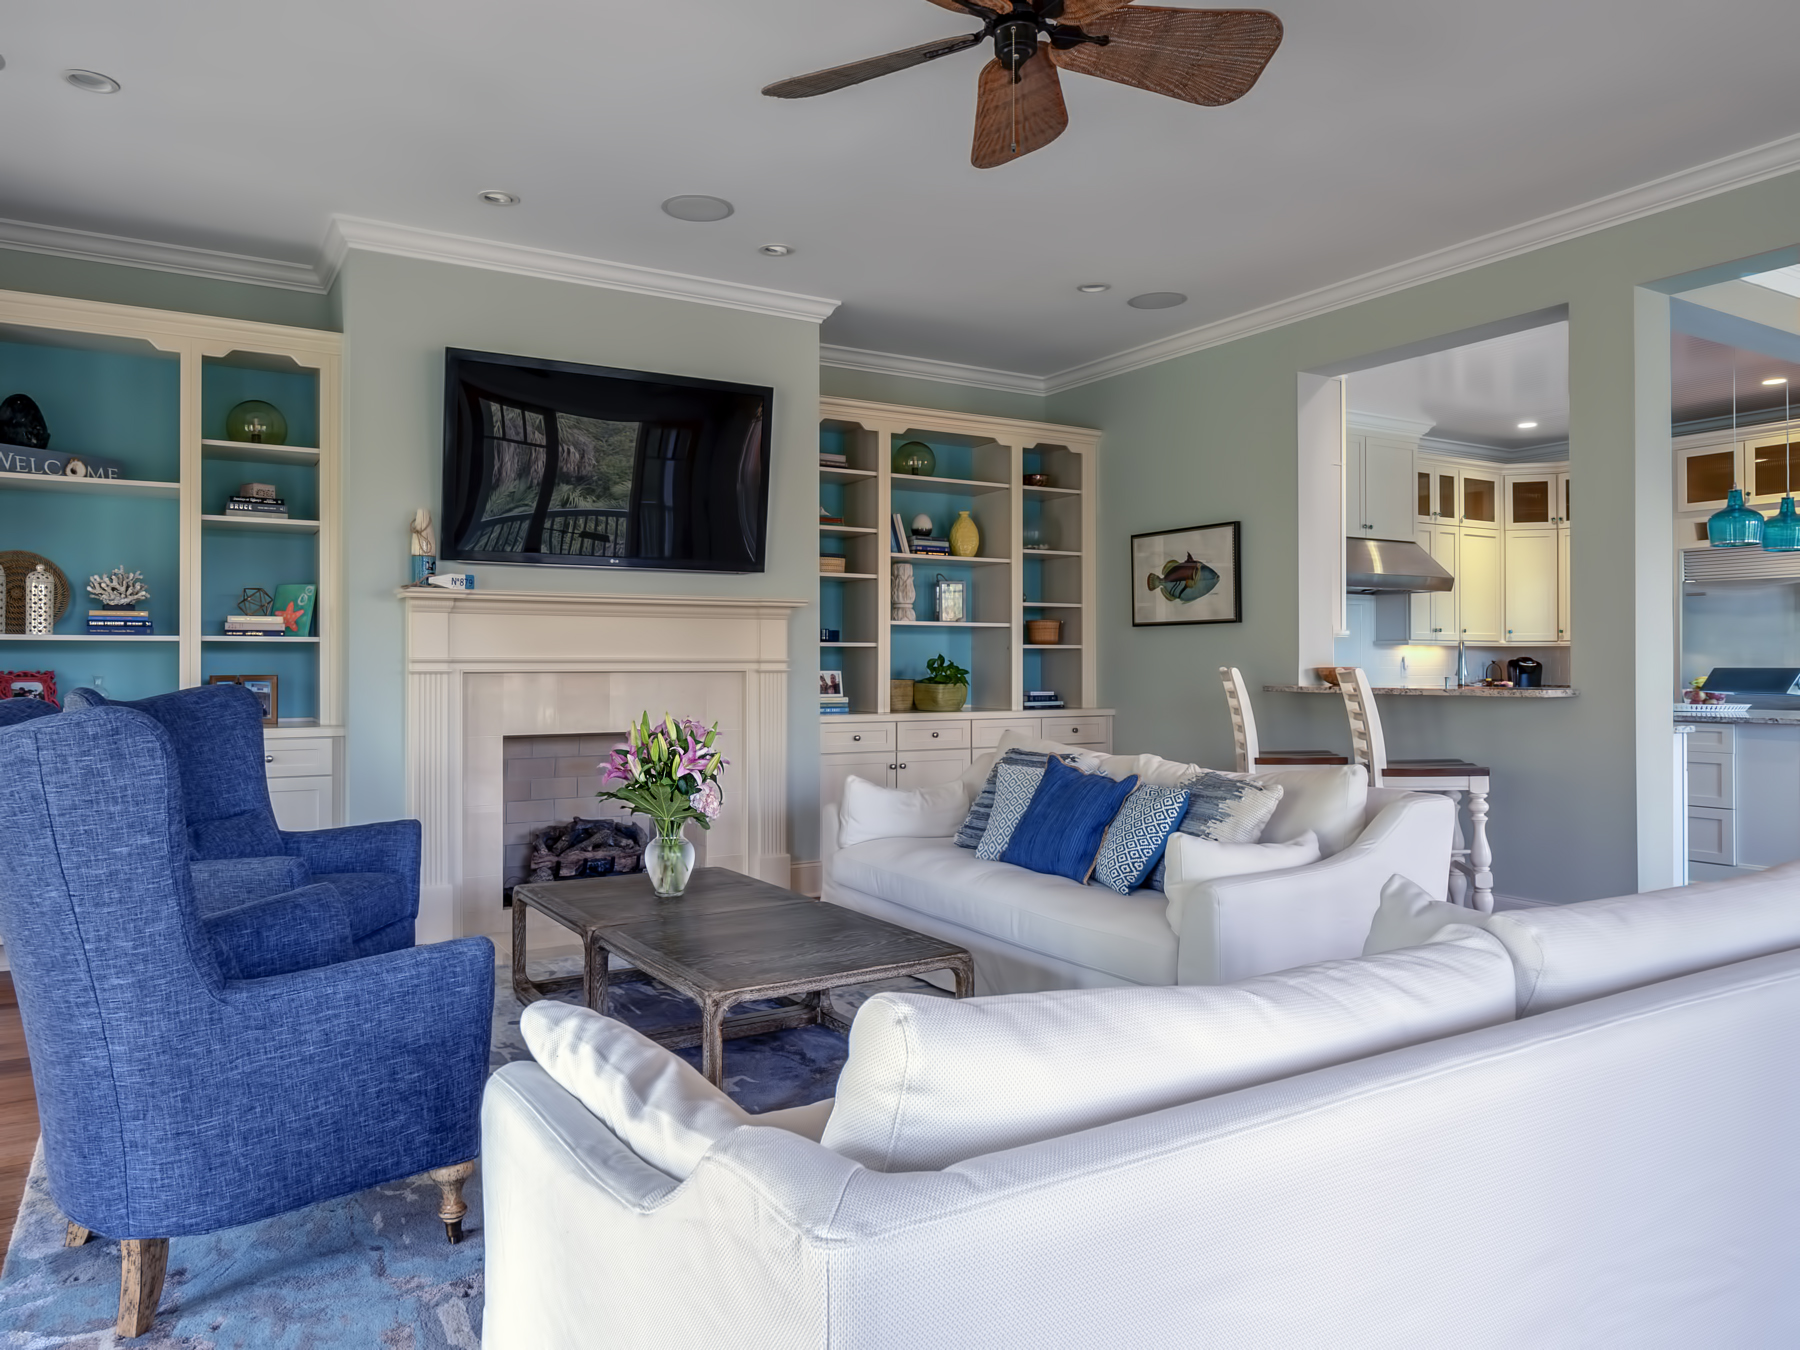 The comfortable beach decor invites you to kick off your shoes and relax with family and friends.